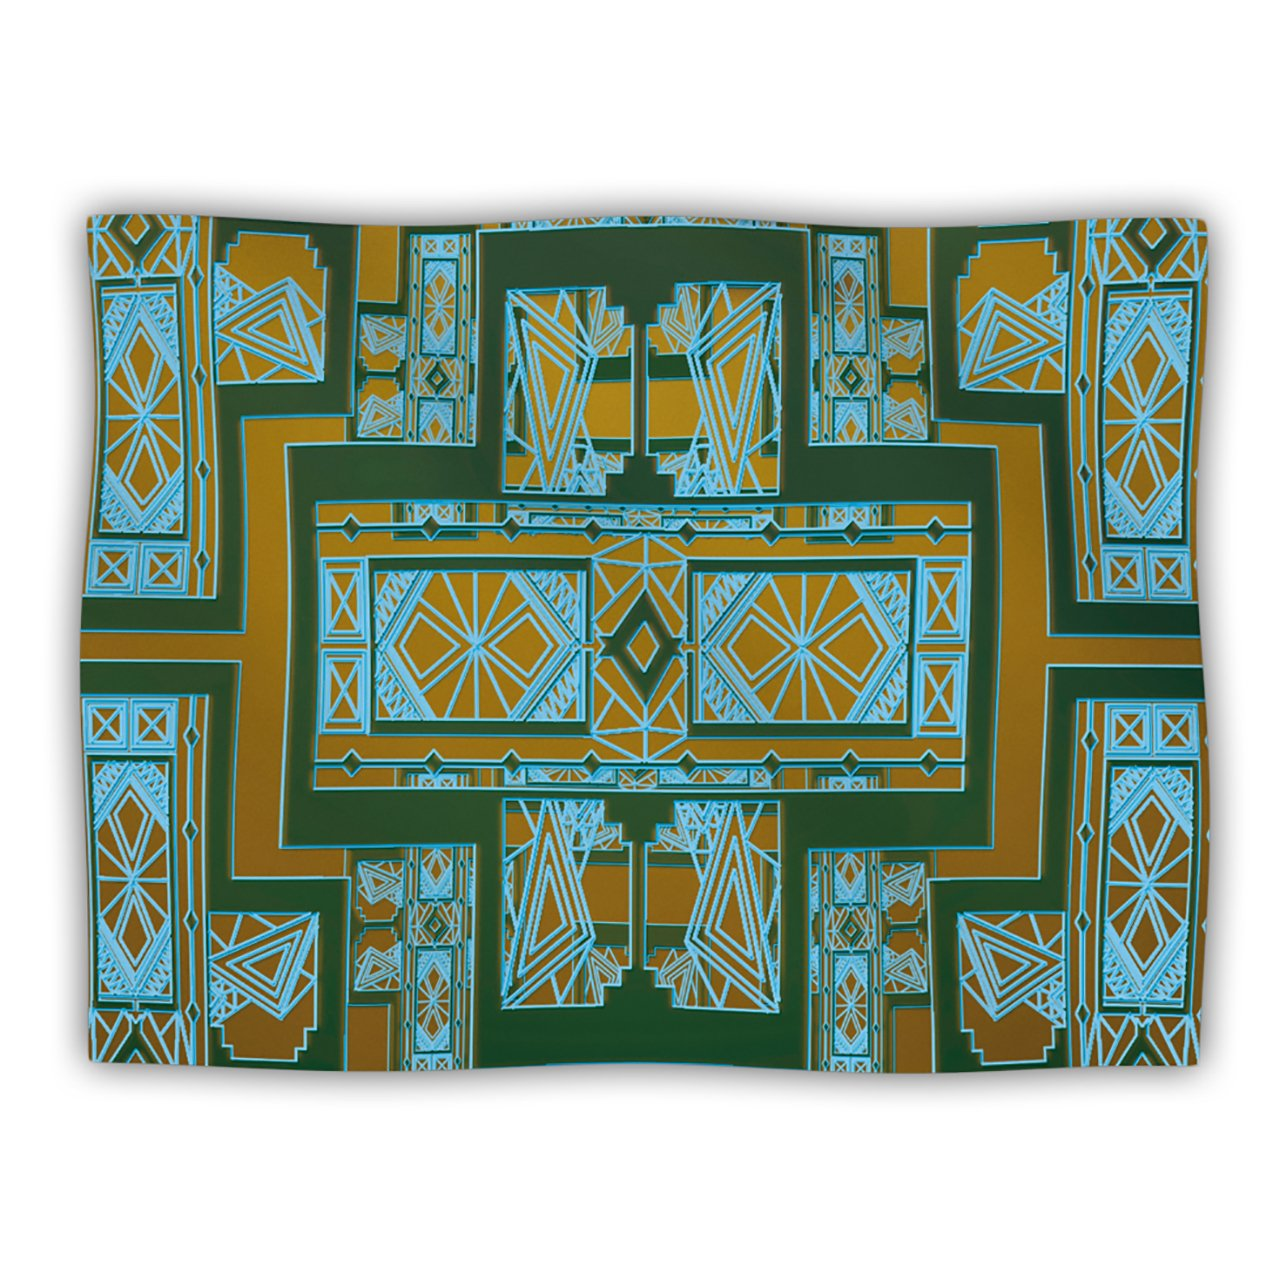 Kess InHouse Nika Martinez golden Art Deco Green and bluee  Pet Dog Blanket, 60 by 50-Inch